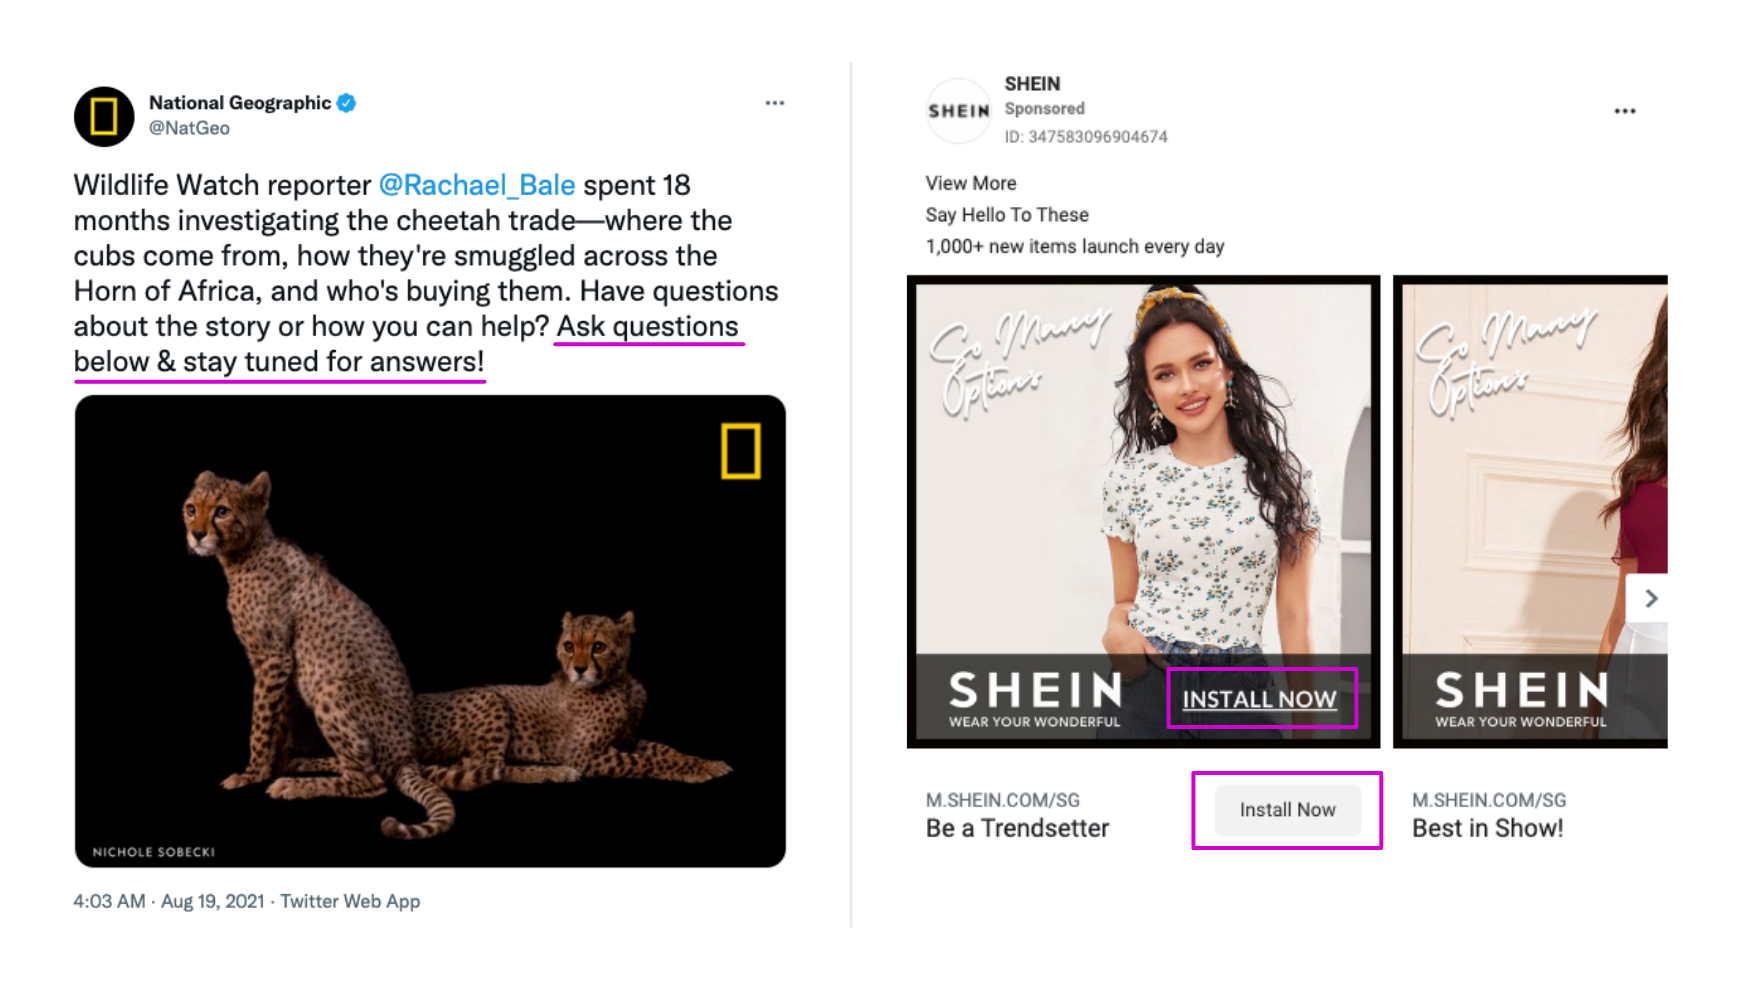 Examples of CTAs used by National Geographic and SHEIN.